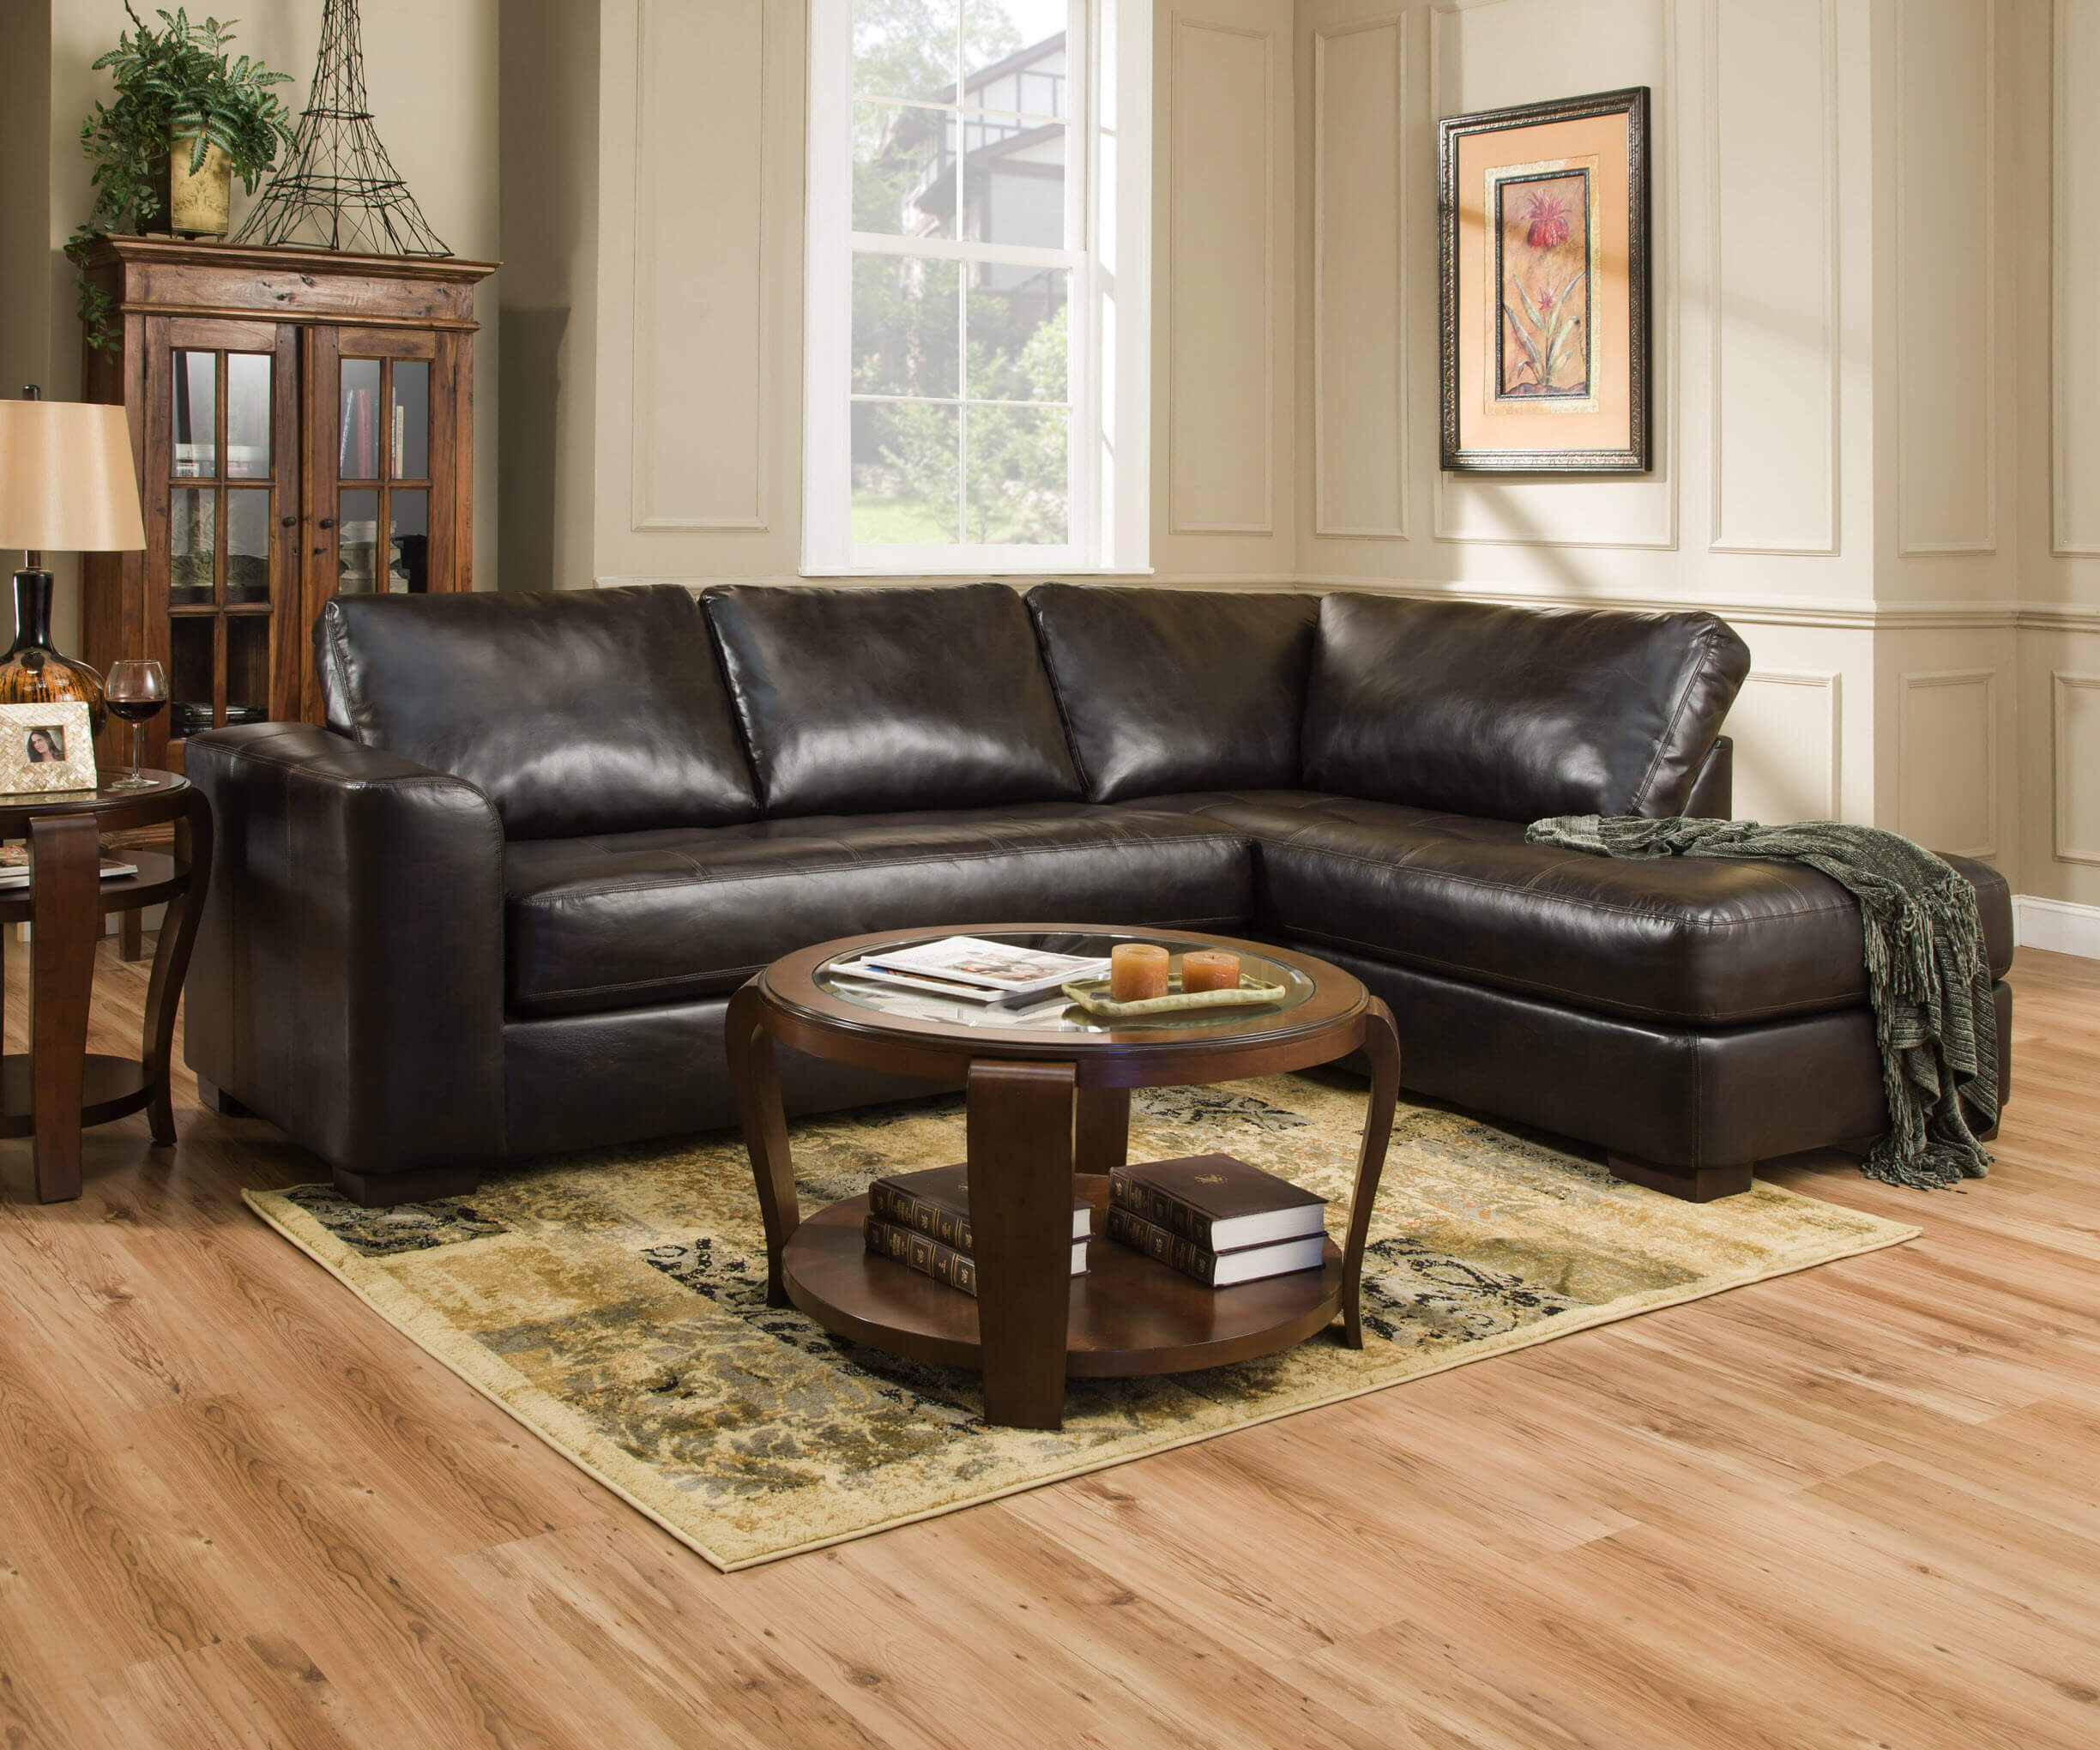 Simmons Lucky Espresso Sectional Sectional Sofa Sets - Espresso living room furniture